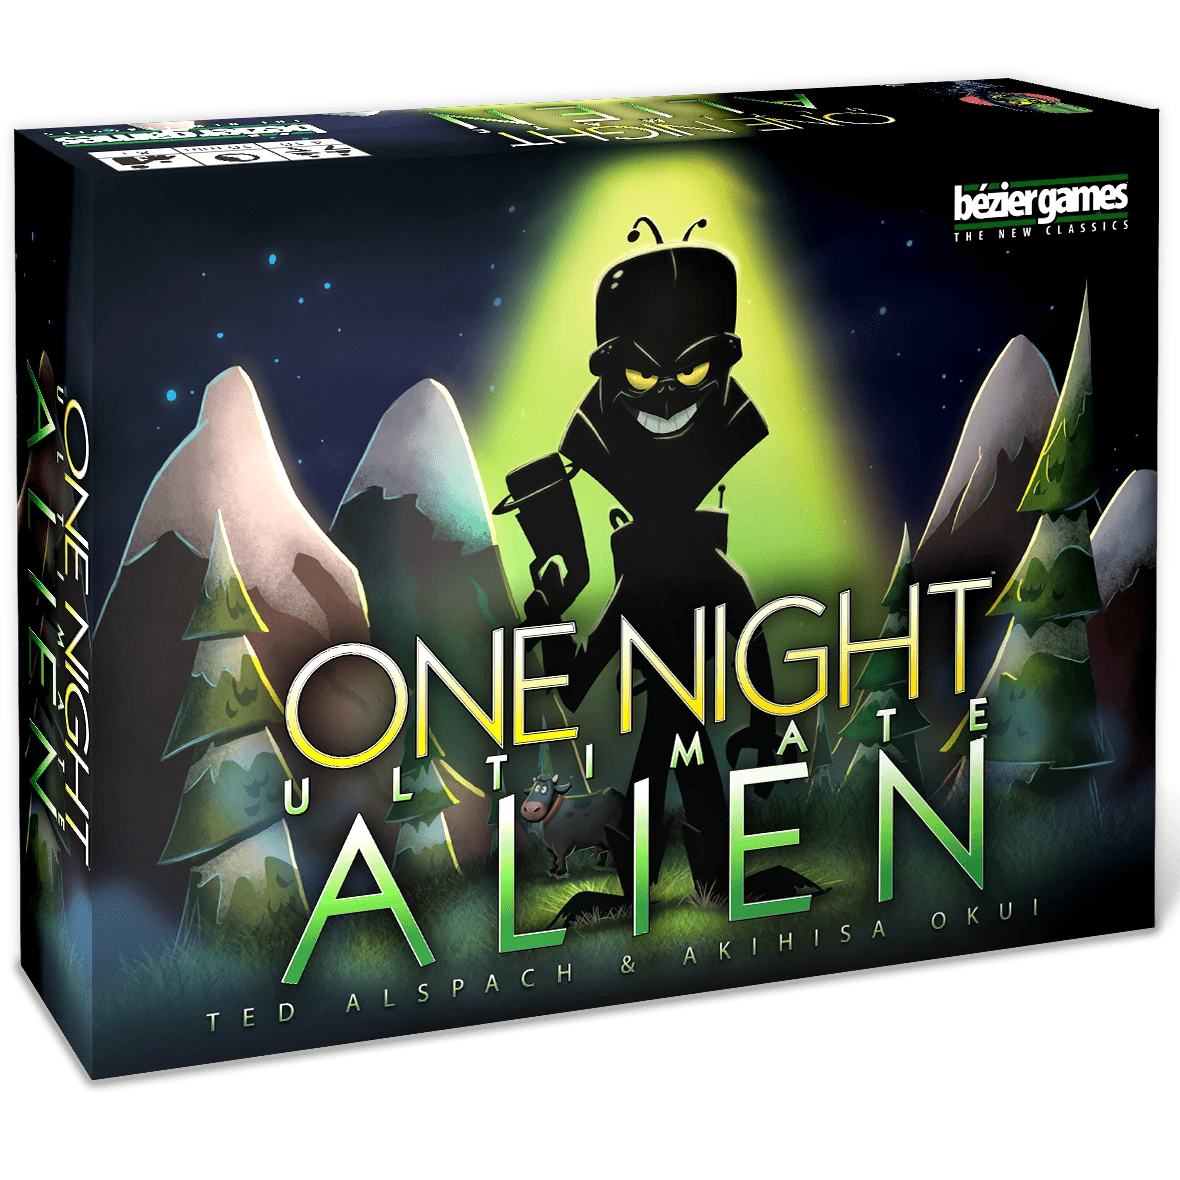 One Night Ultimate Alien Bezier Games Board Games